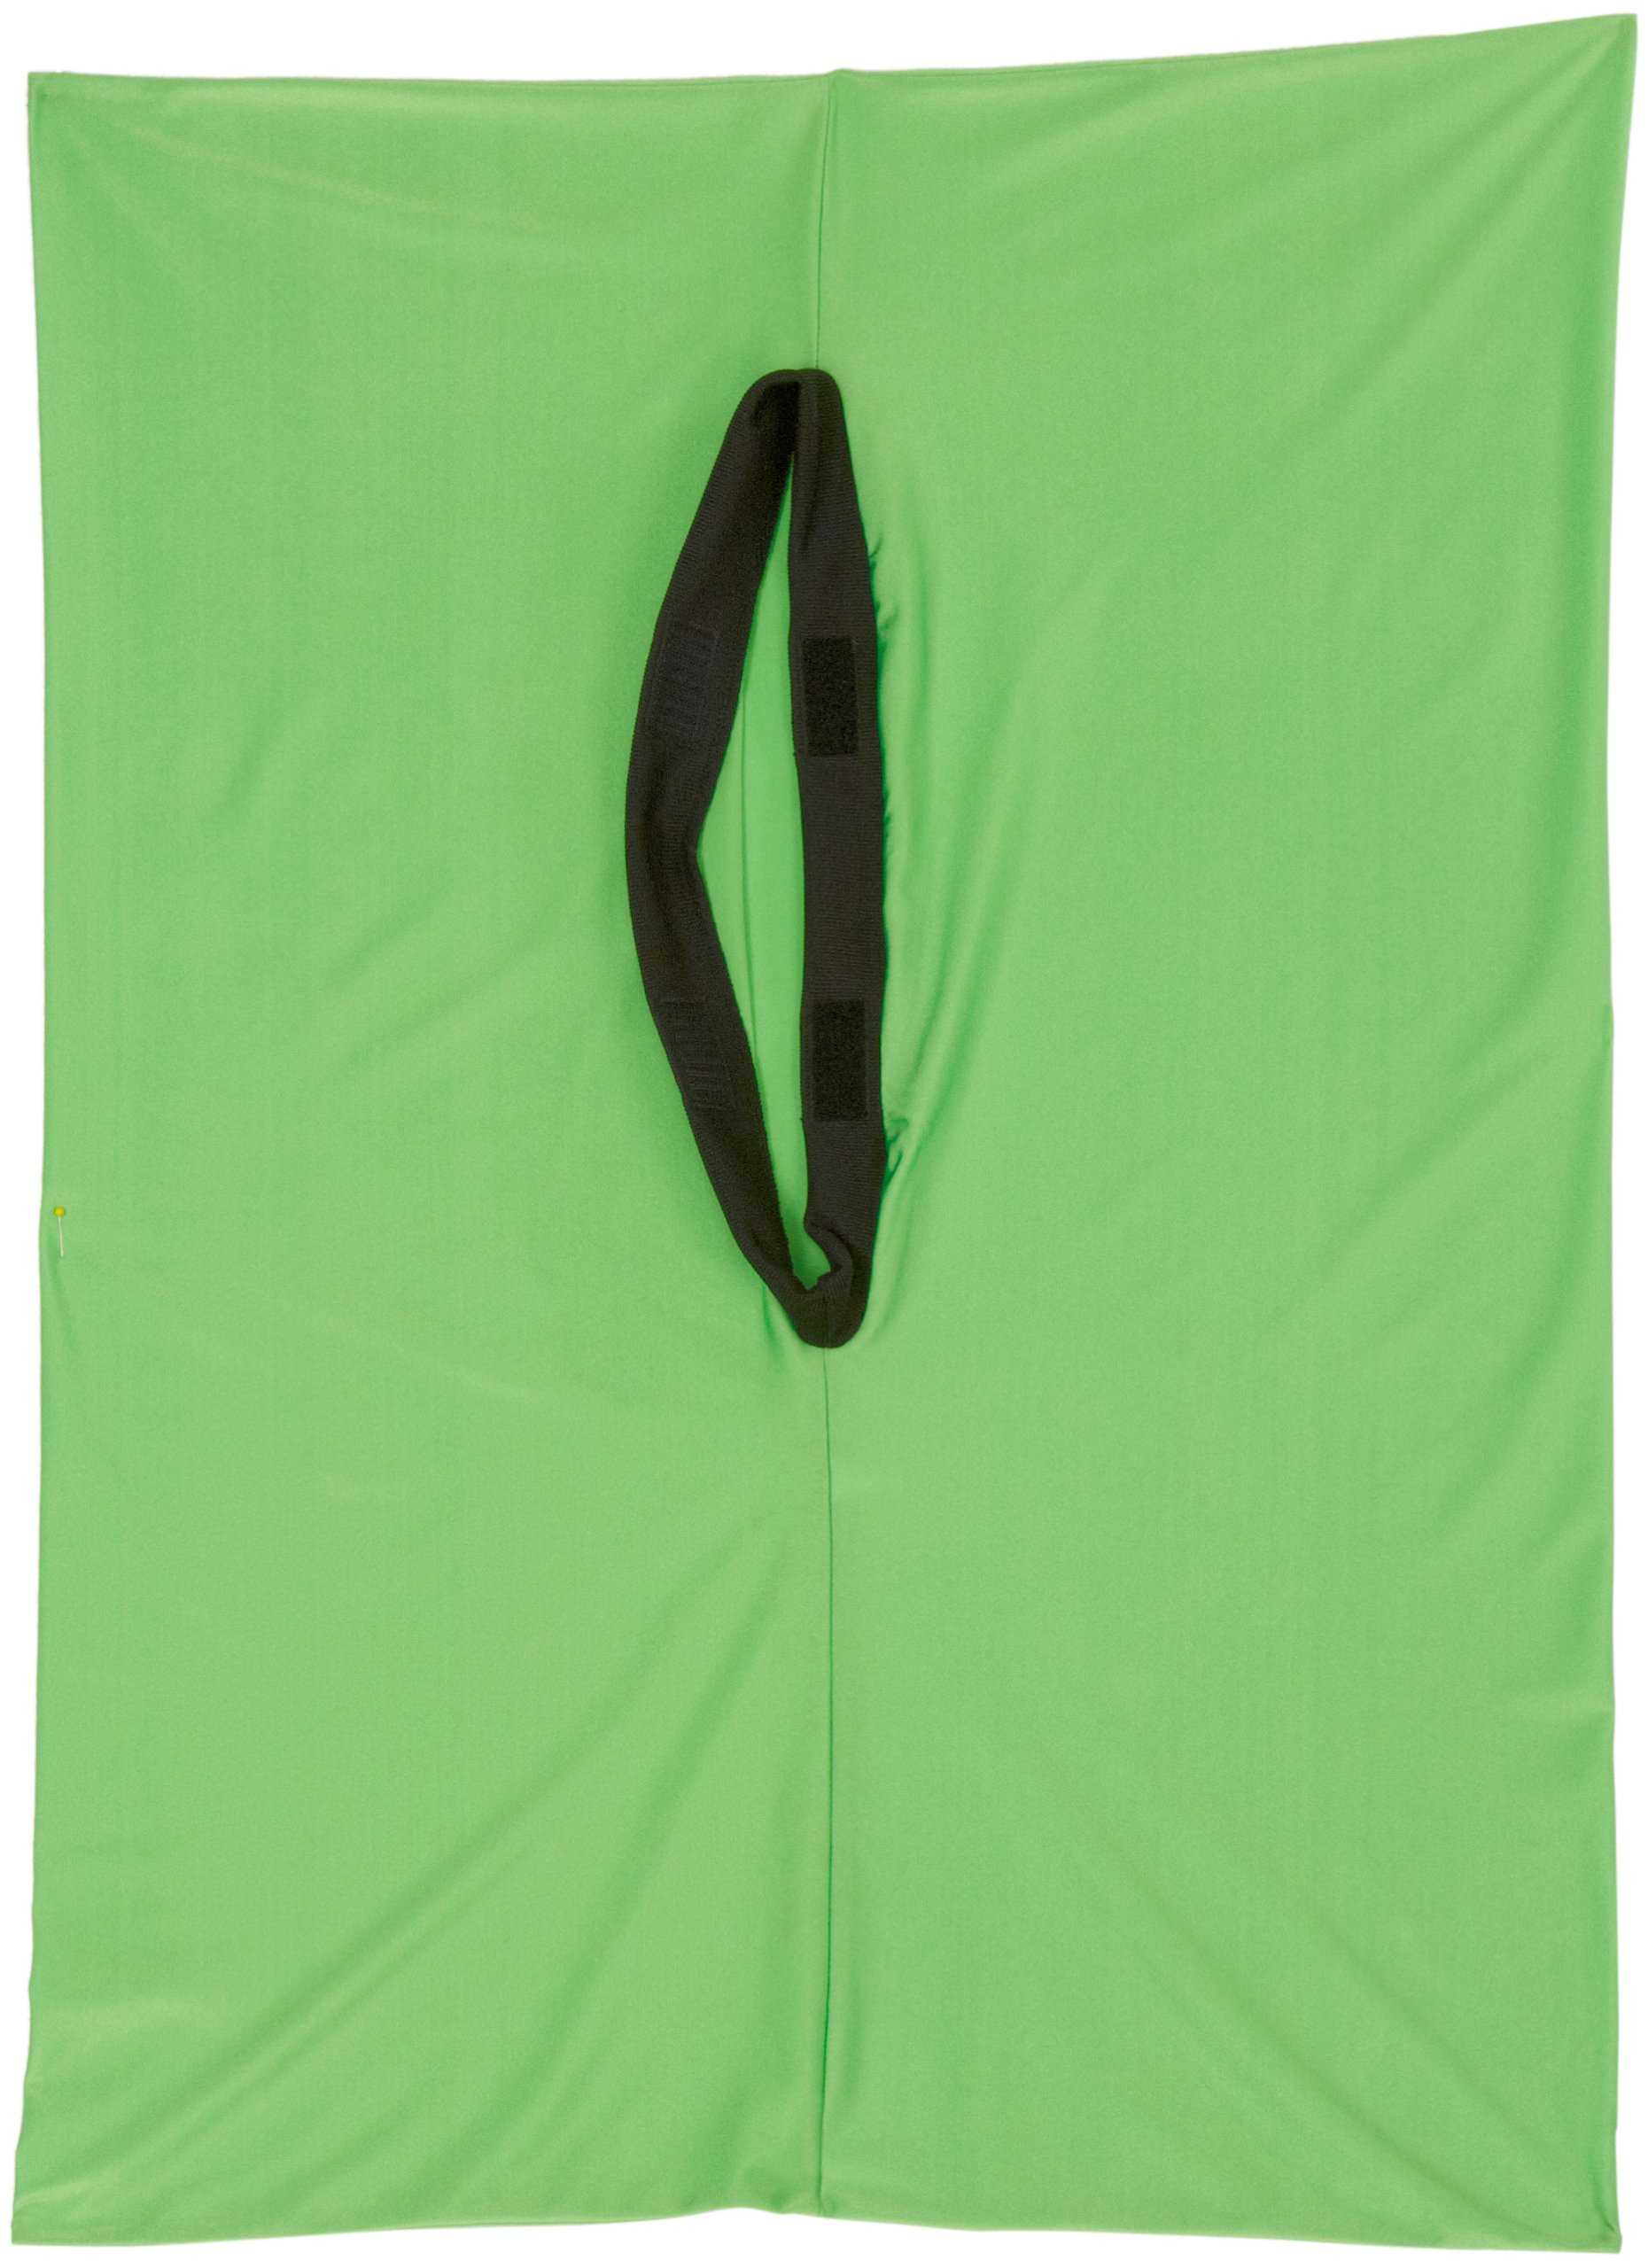 Abilitations Dynamic Movement Body Sox, 3 to 5 Years, Small, 40 x 27 Inches, Green